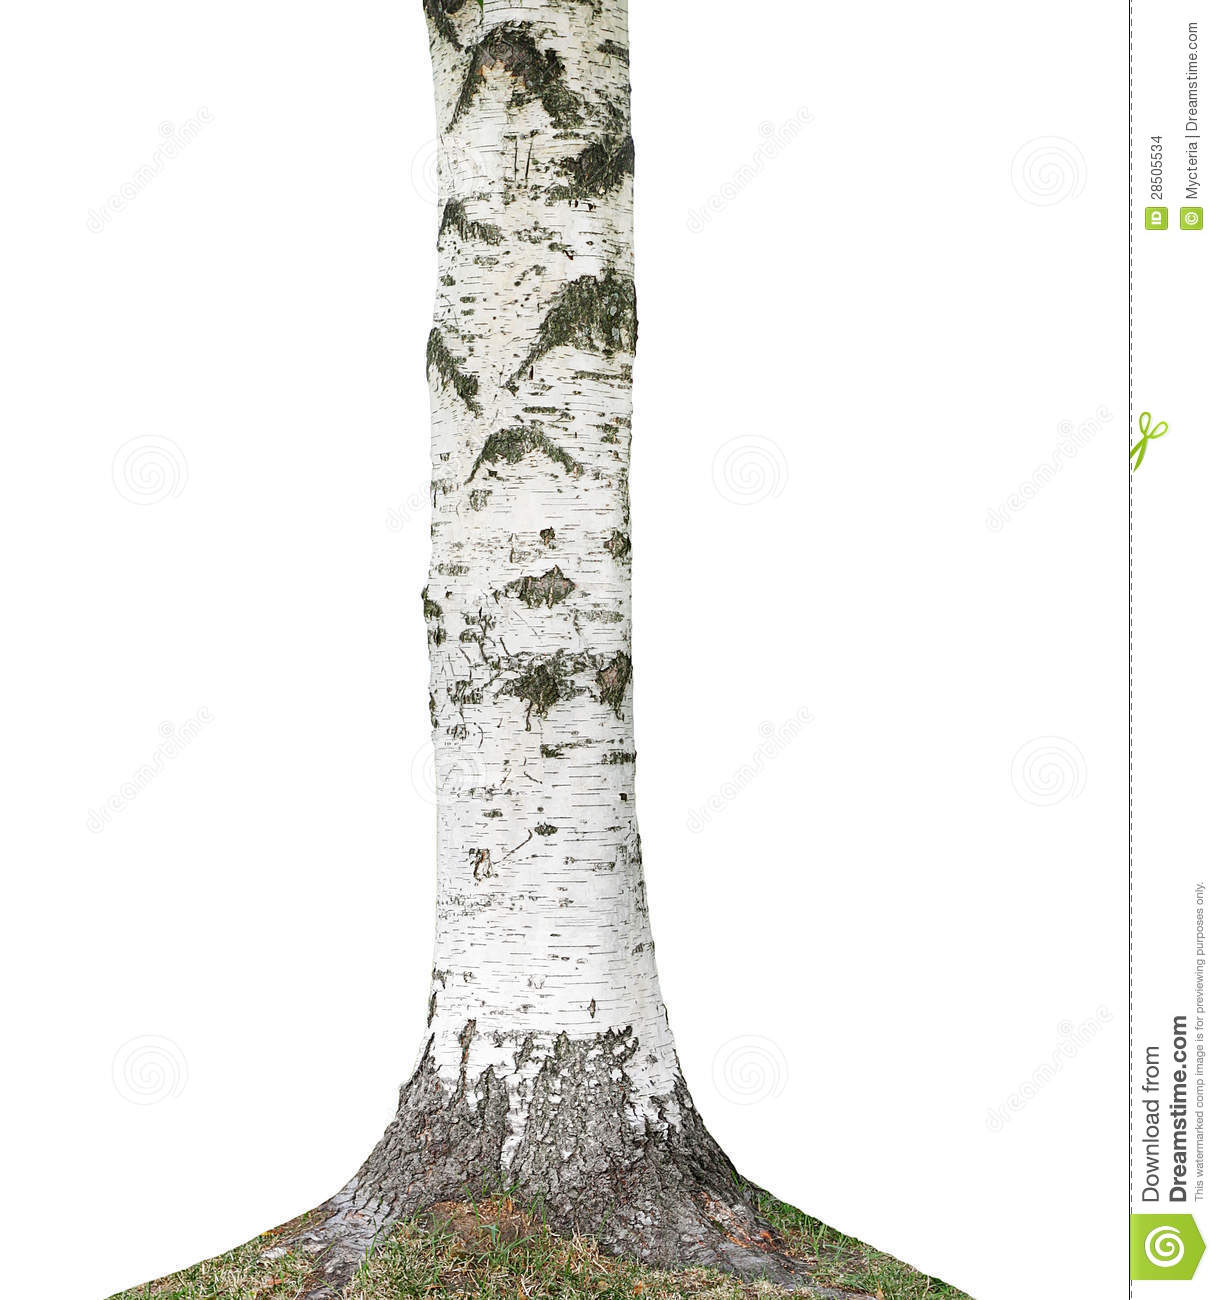 birch tree trunk stock photo image of object tree trunk 28505534